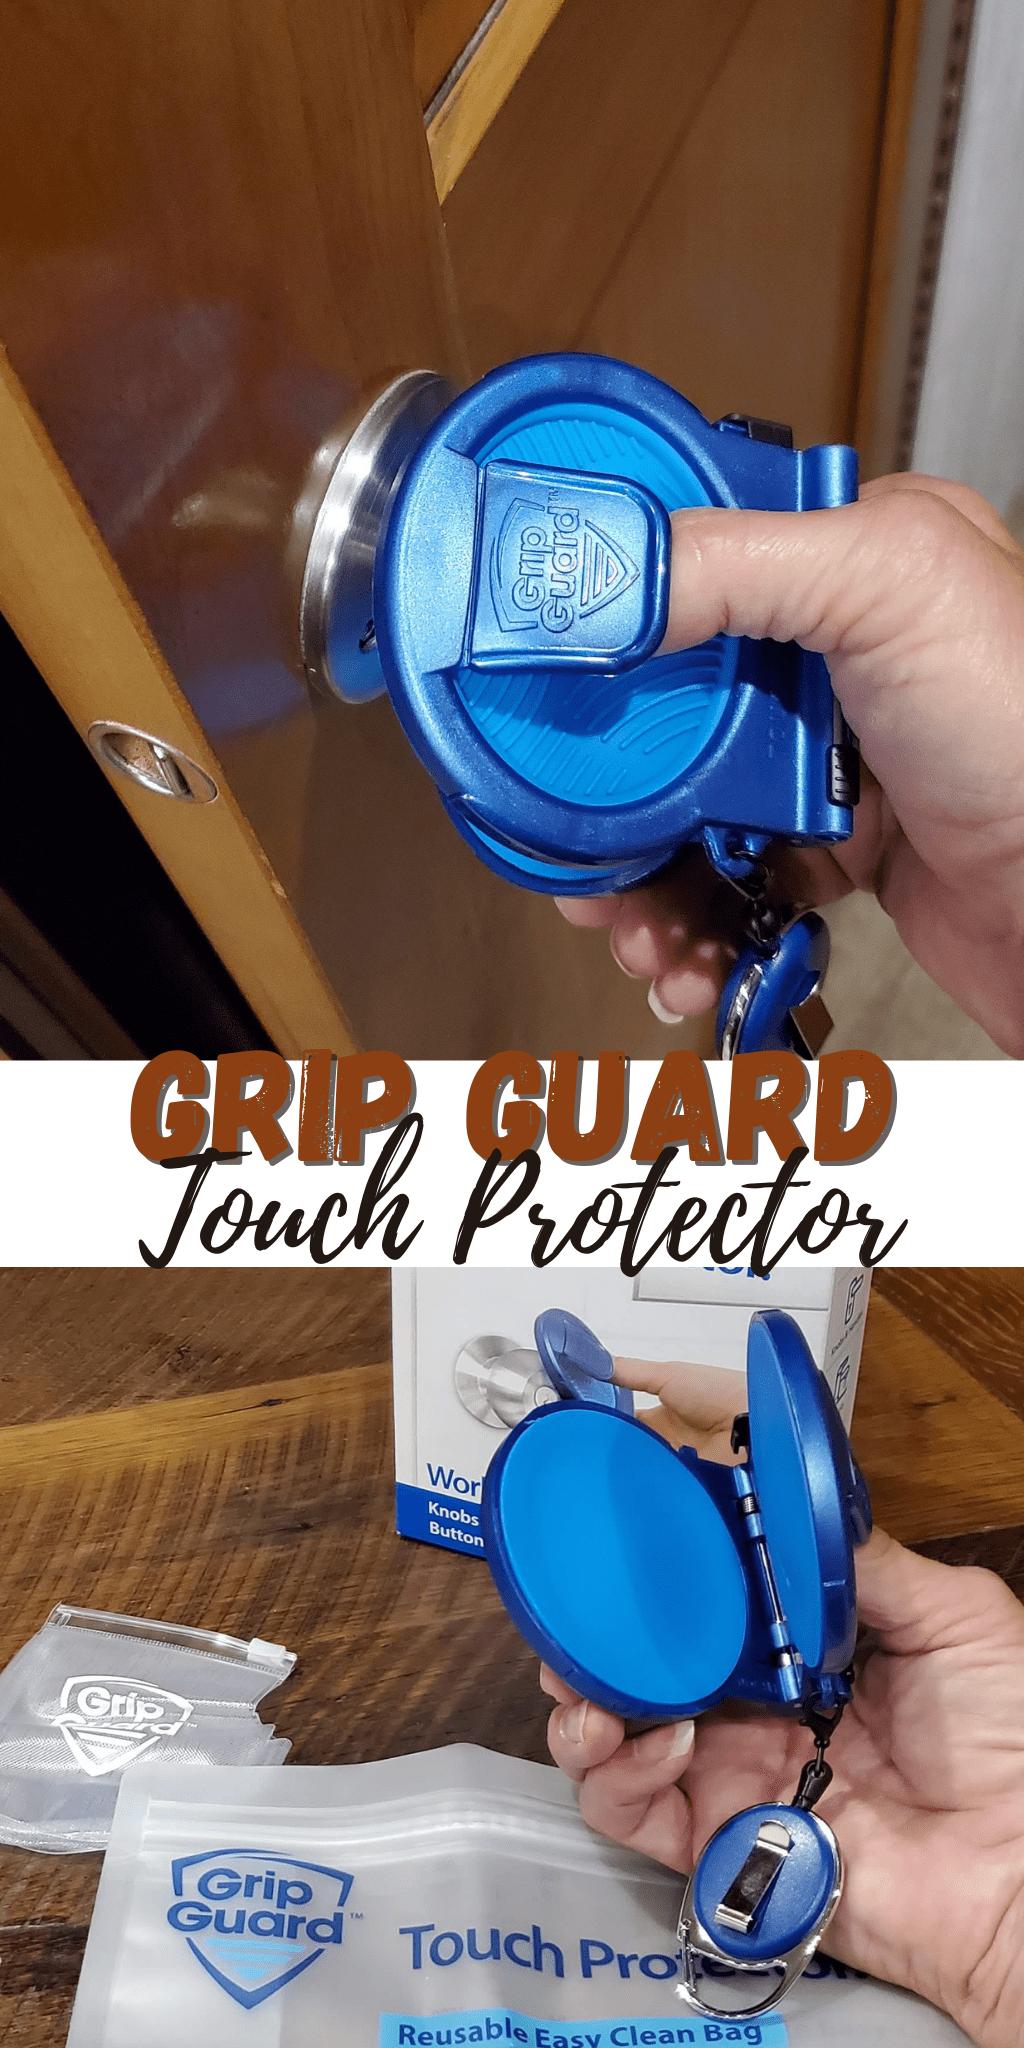 grip guard touch protector